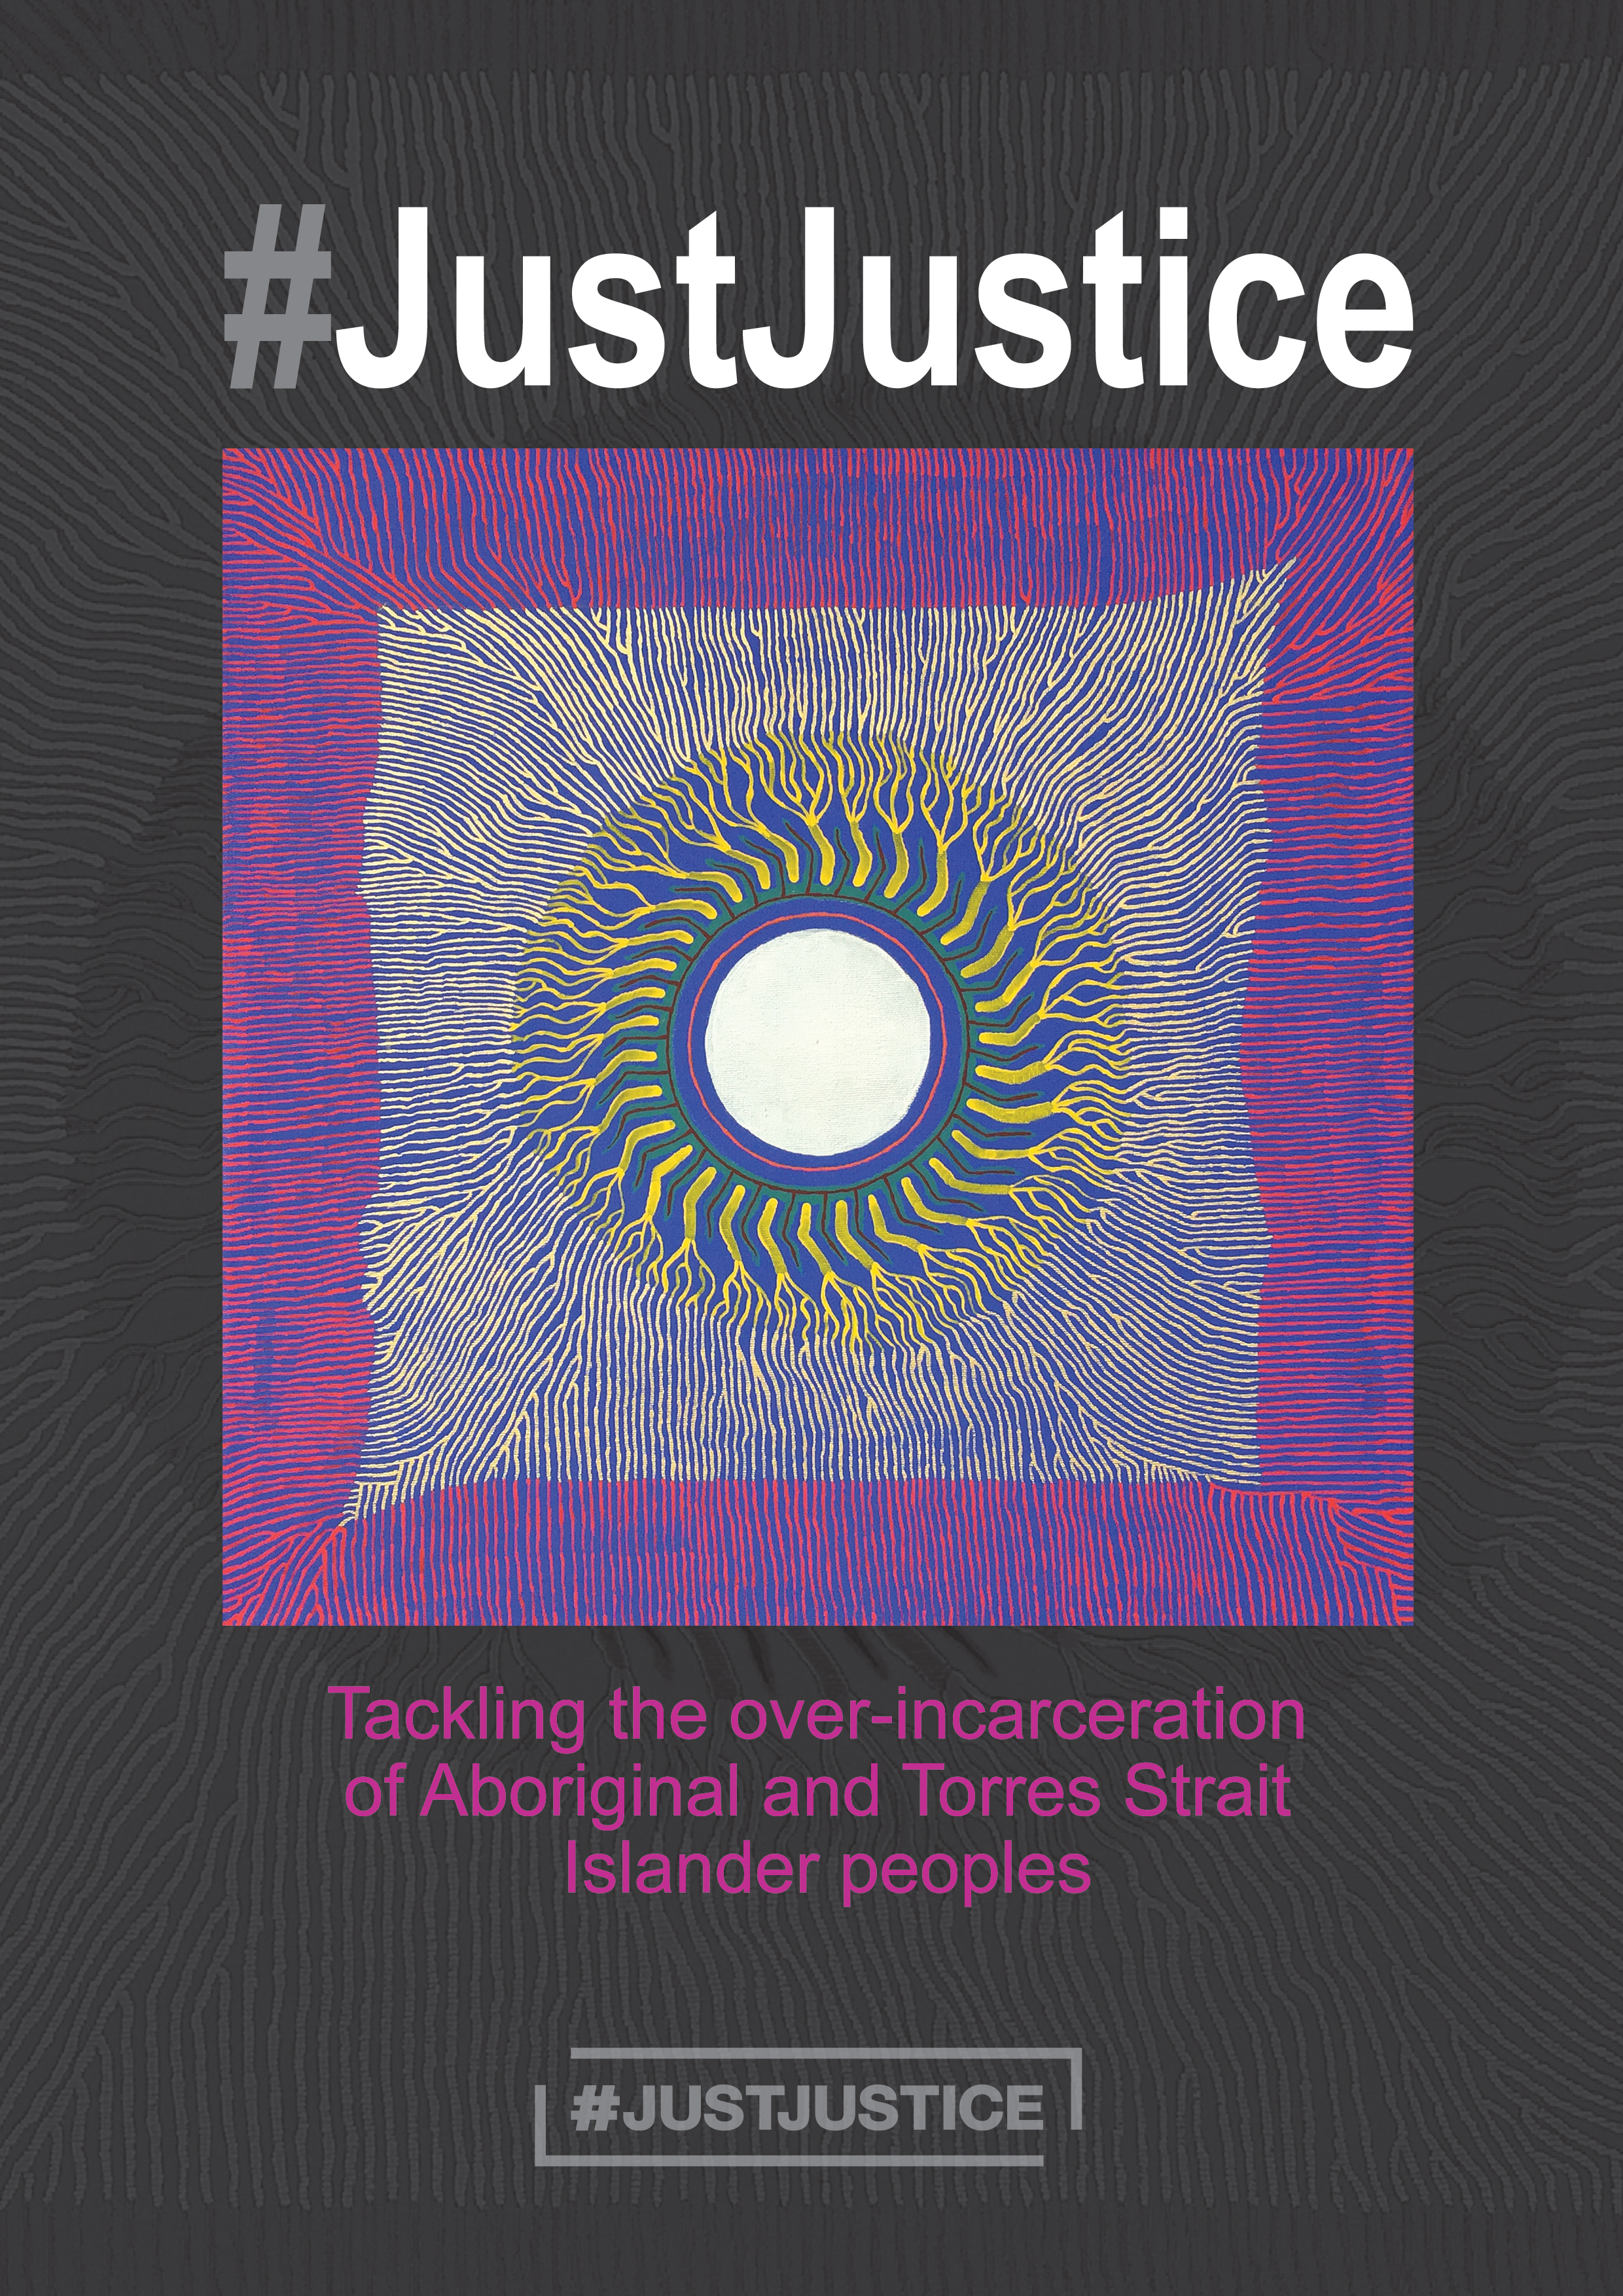 #JustJustice – Tackling the over-incarceration of Aboriginal and Torres Strait Islander peoples